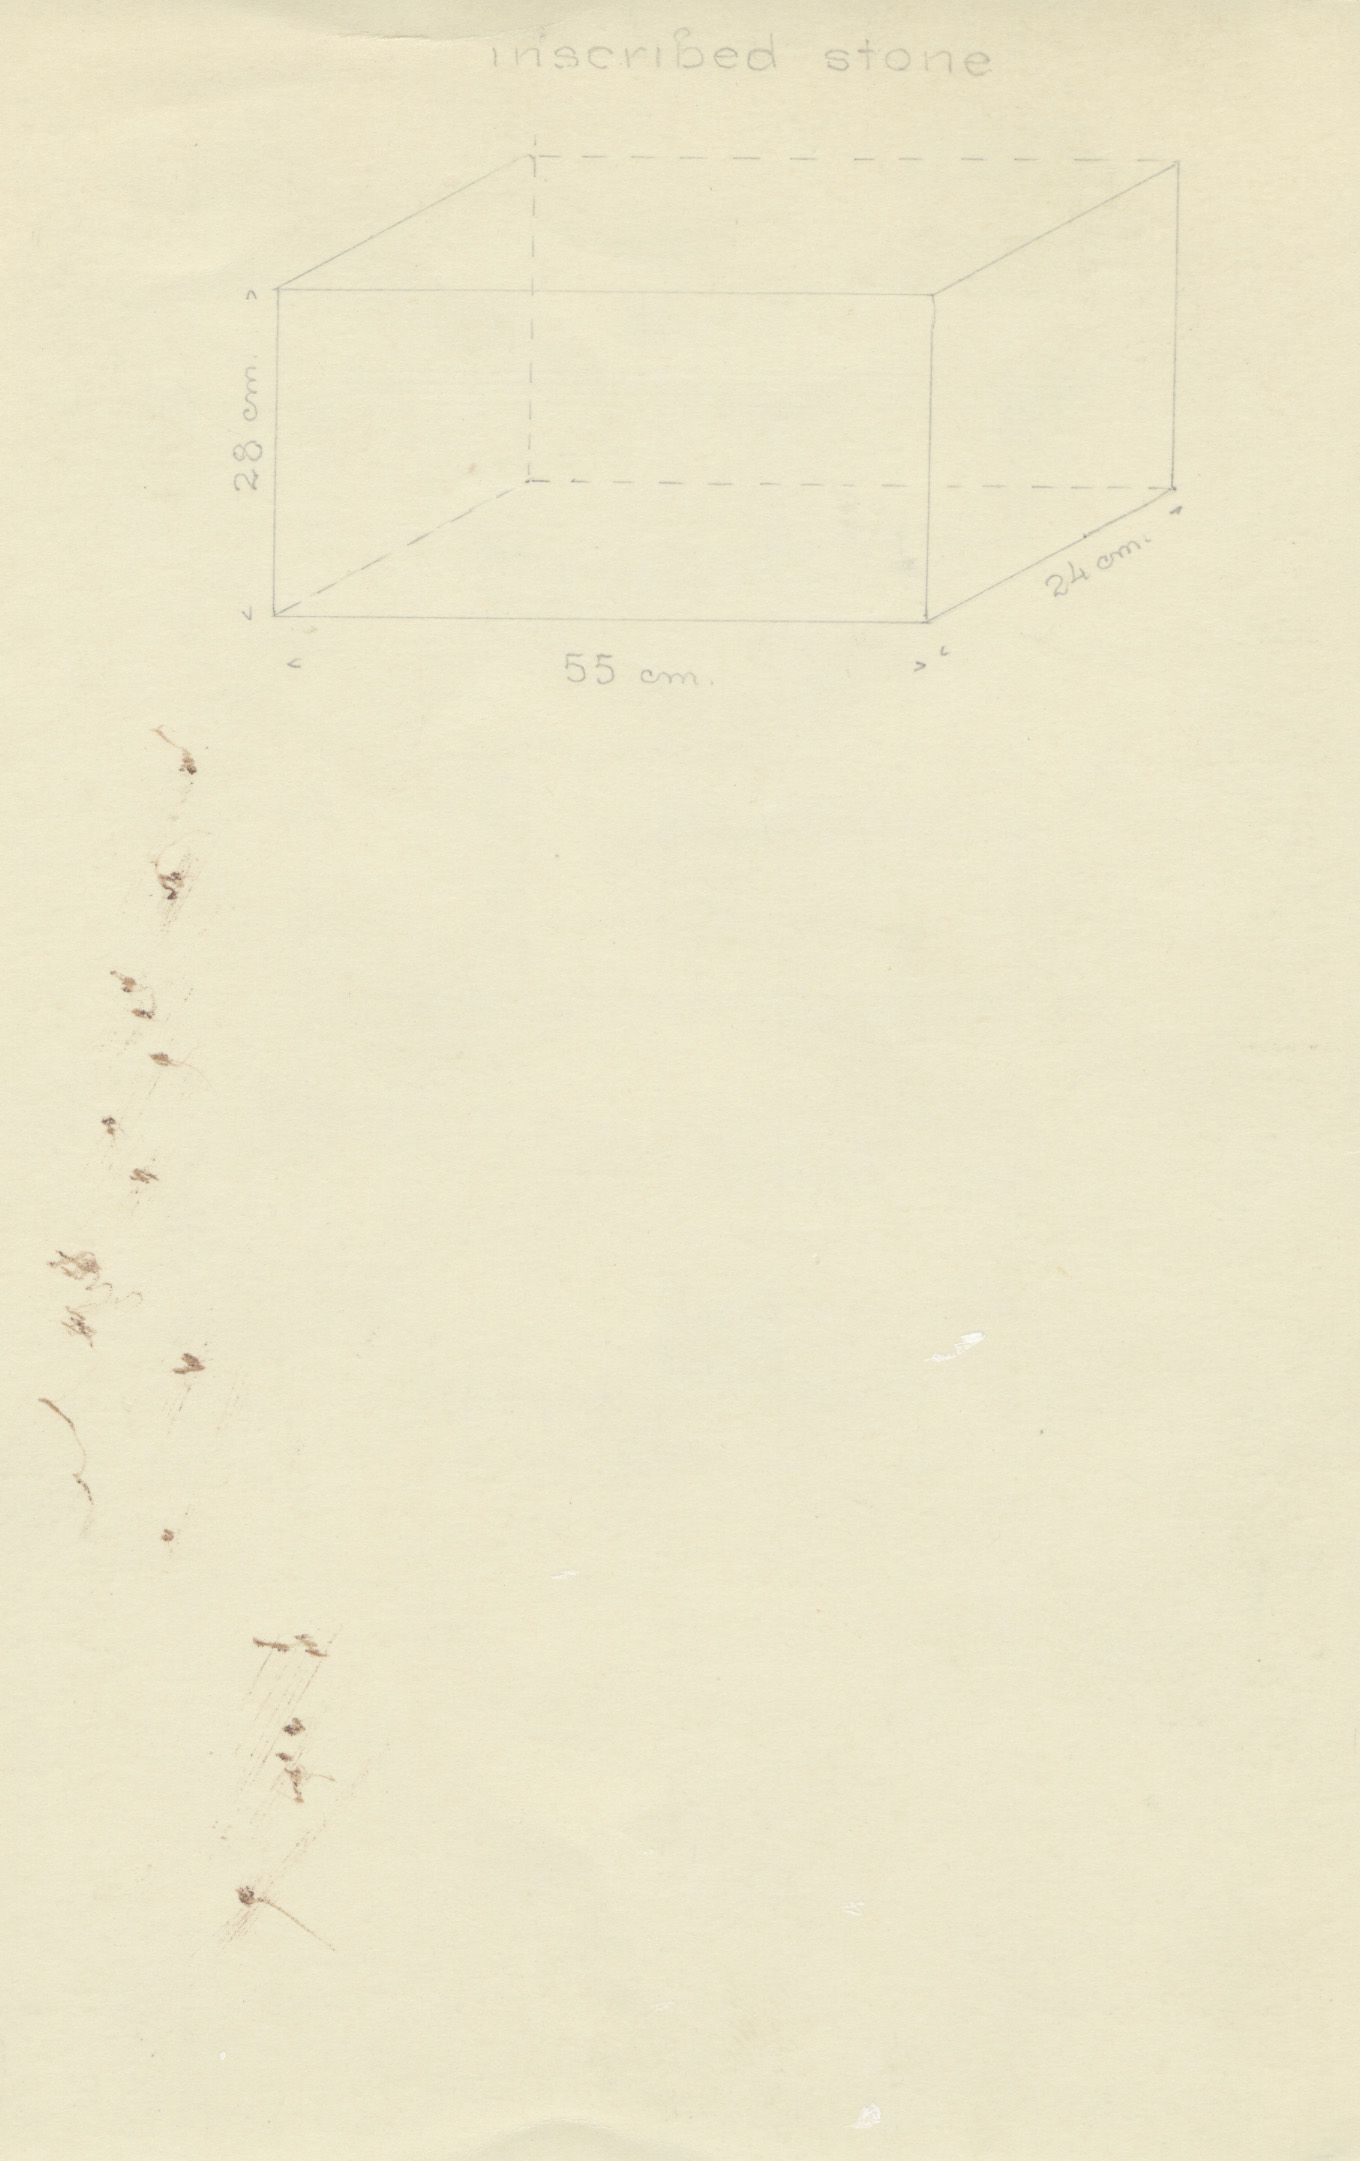 Drawings: G 2188, Shaft Y, notes